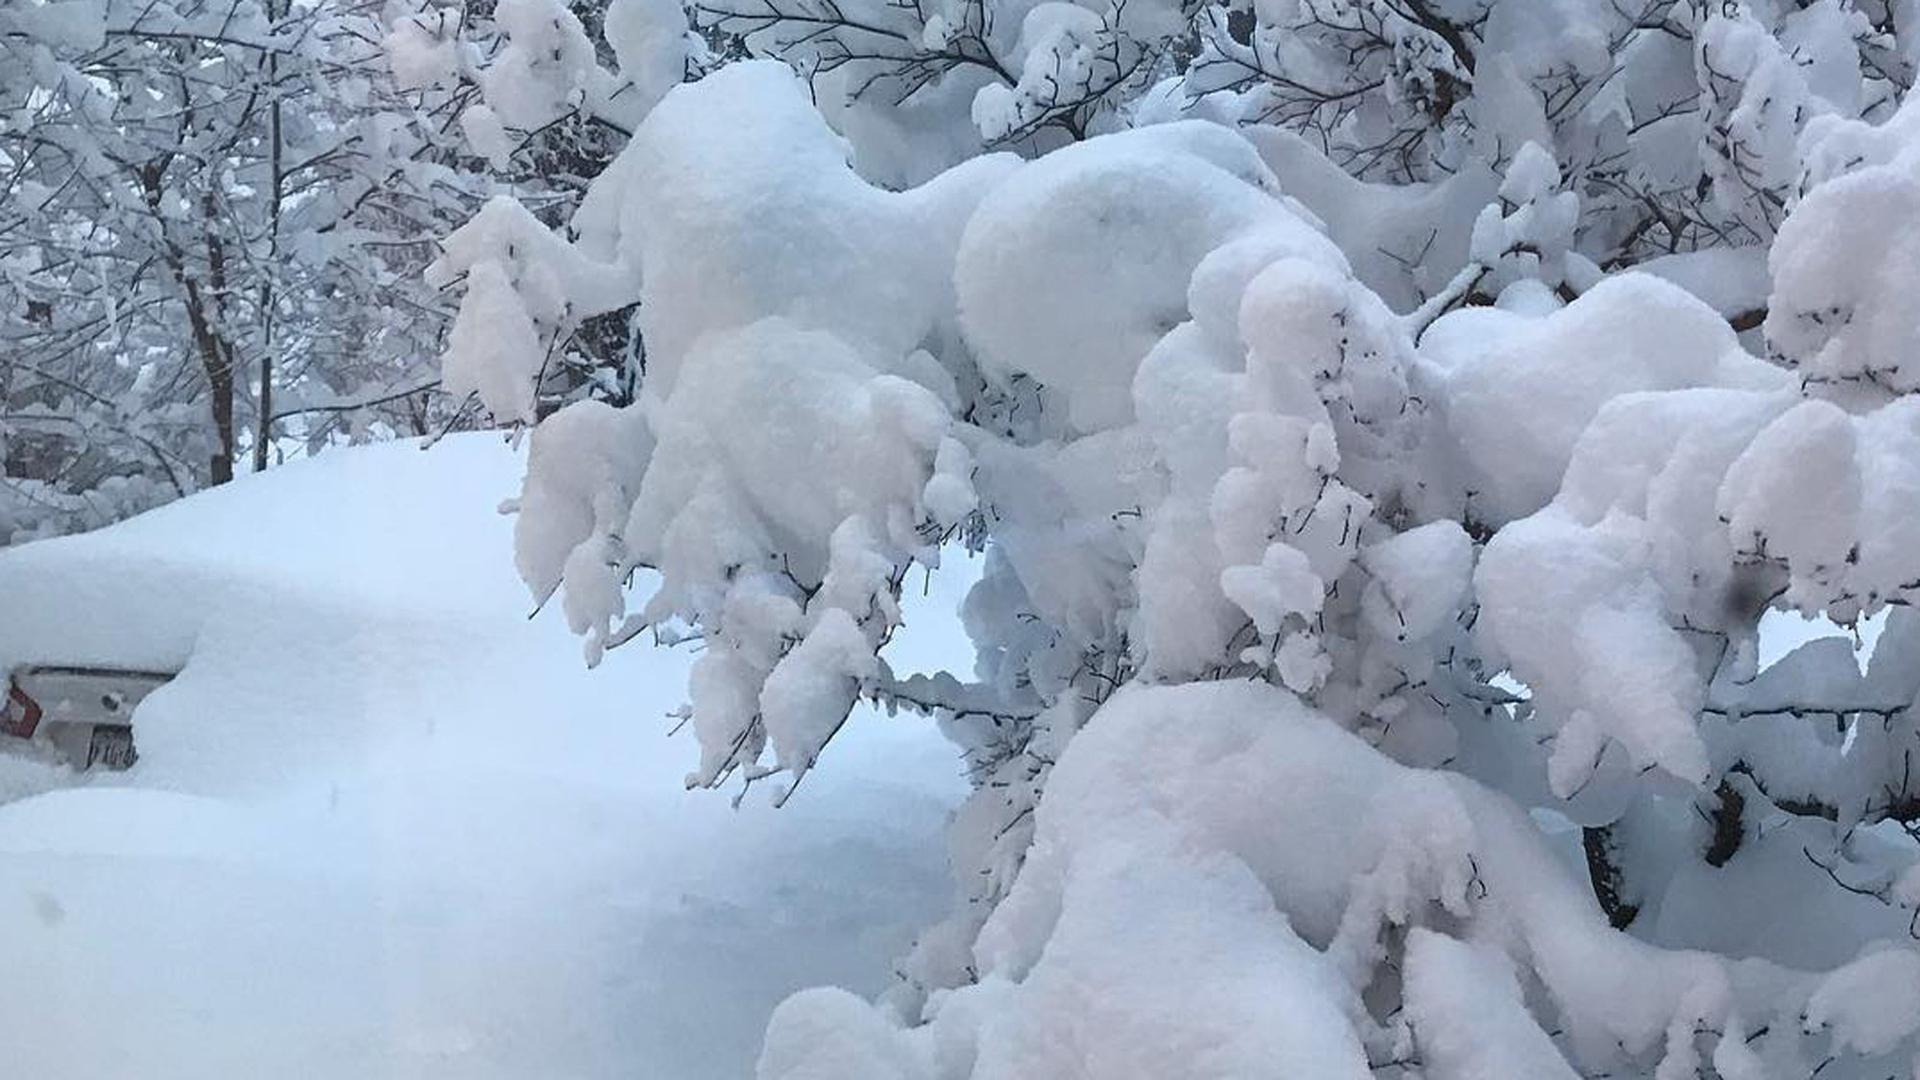 Erie, Pennsylvania, had a total of 34 inches of snow on Christmas Day, blanketing the city and shattering the city's previous records for snowfall in a single day. (Credit: Kara Murphy)